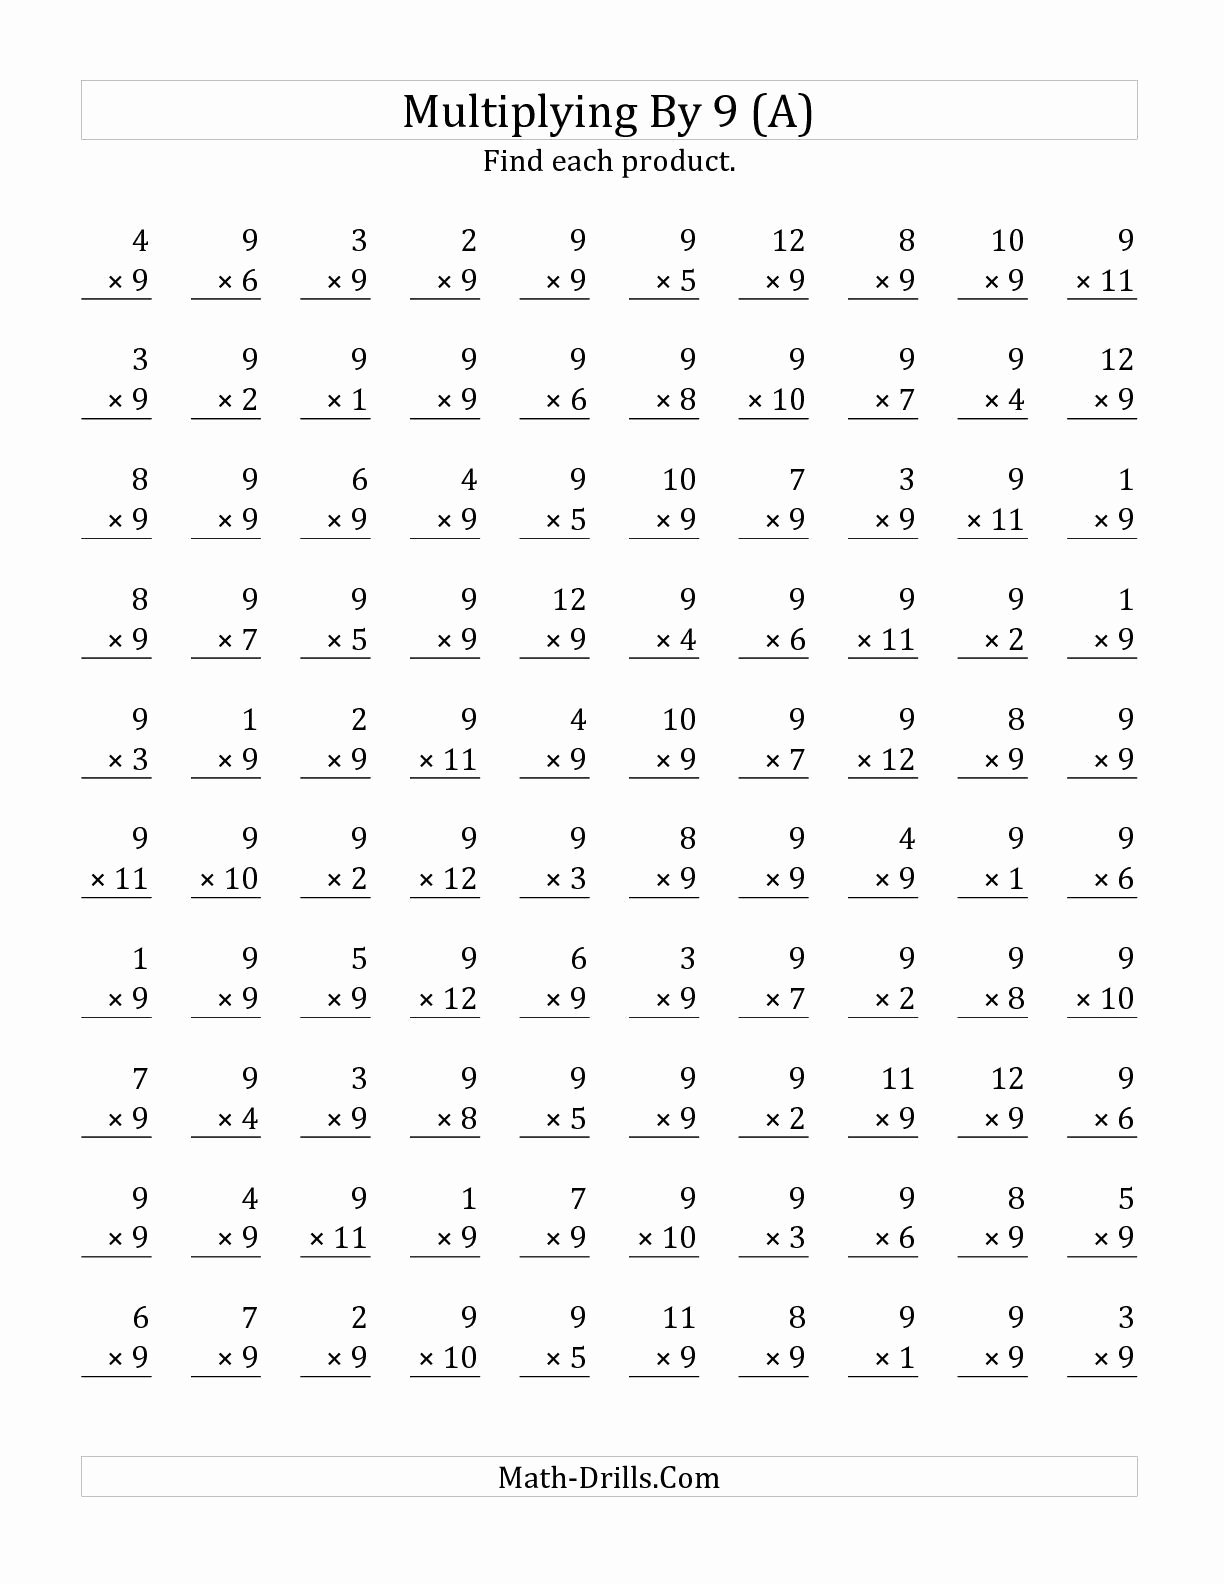 Multiplication Worksheets 9 New the Multiplying 1 to 12 by 9 A Math Worksheet From the